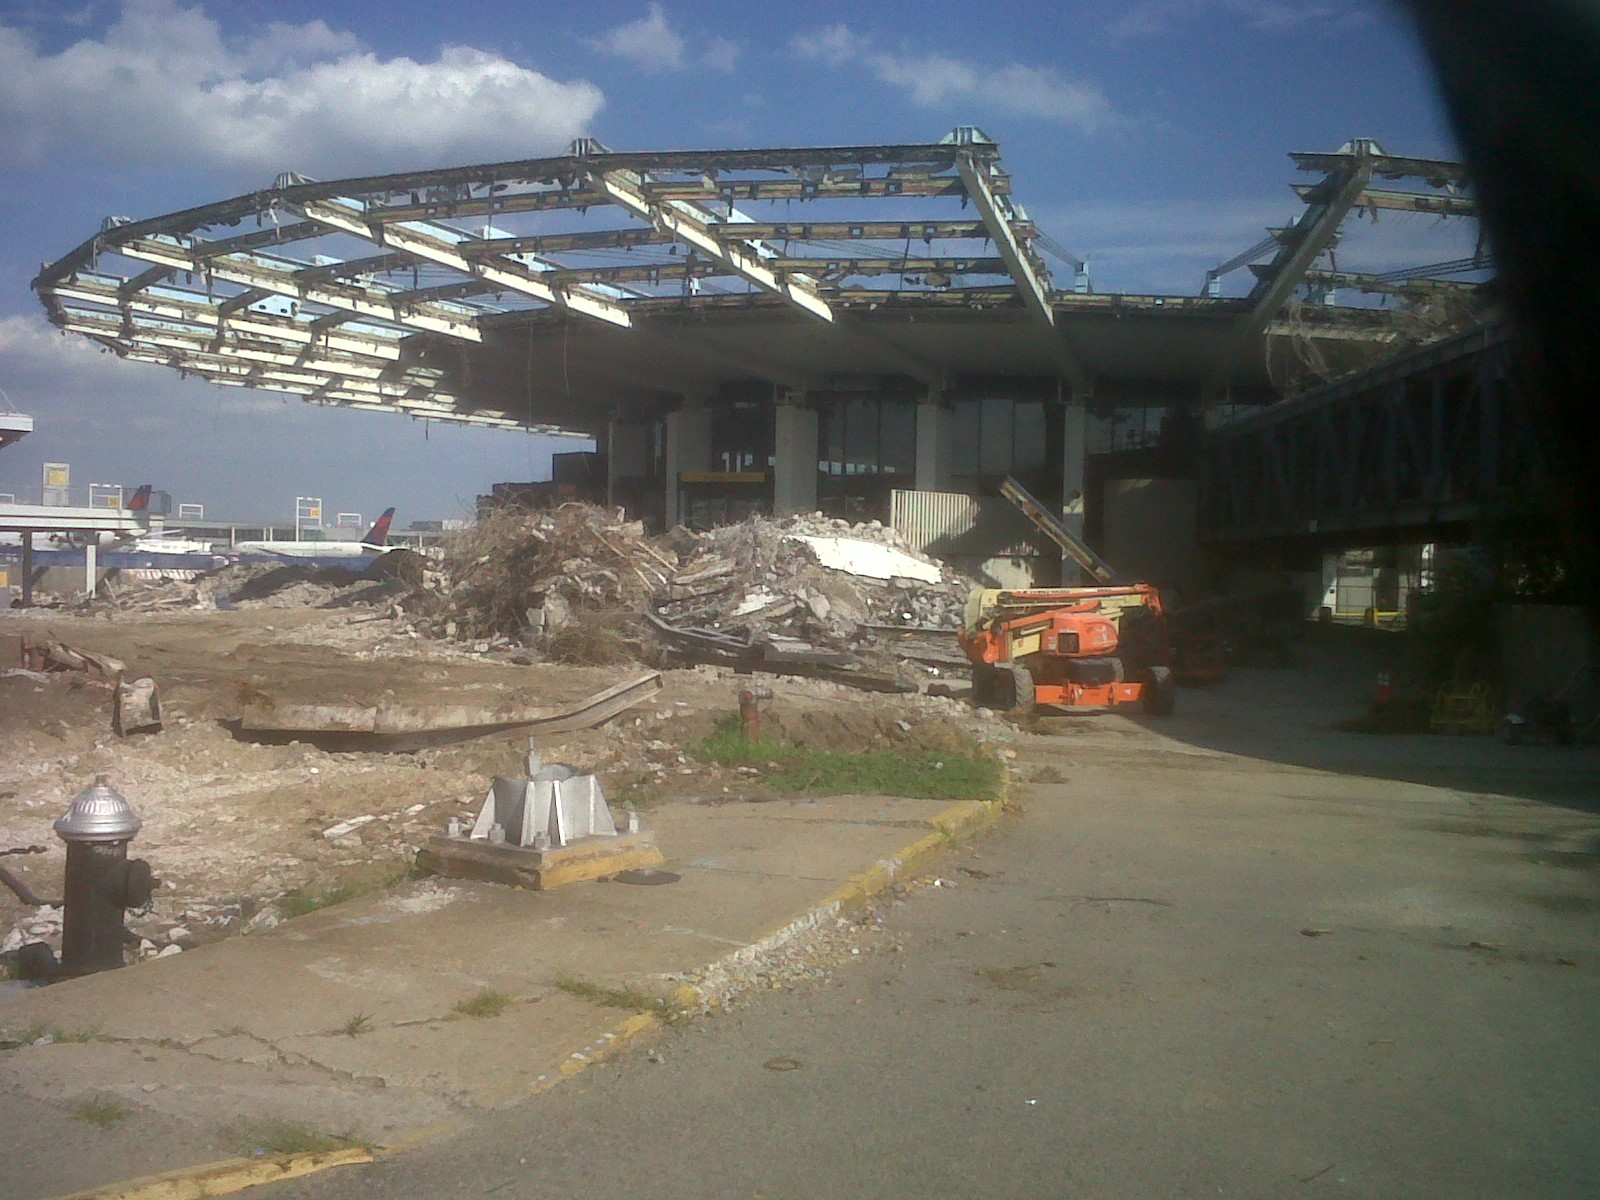 Demolition of the Worldport, August 10, 2013